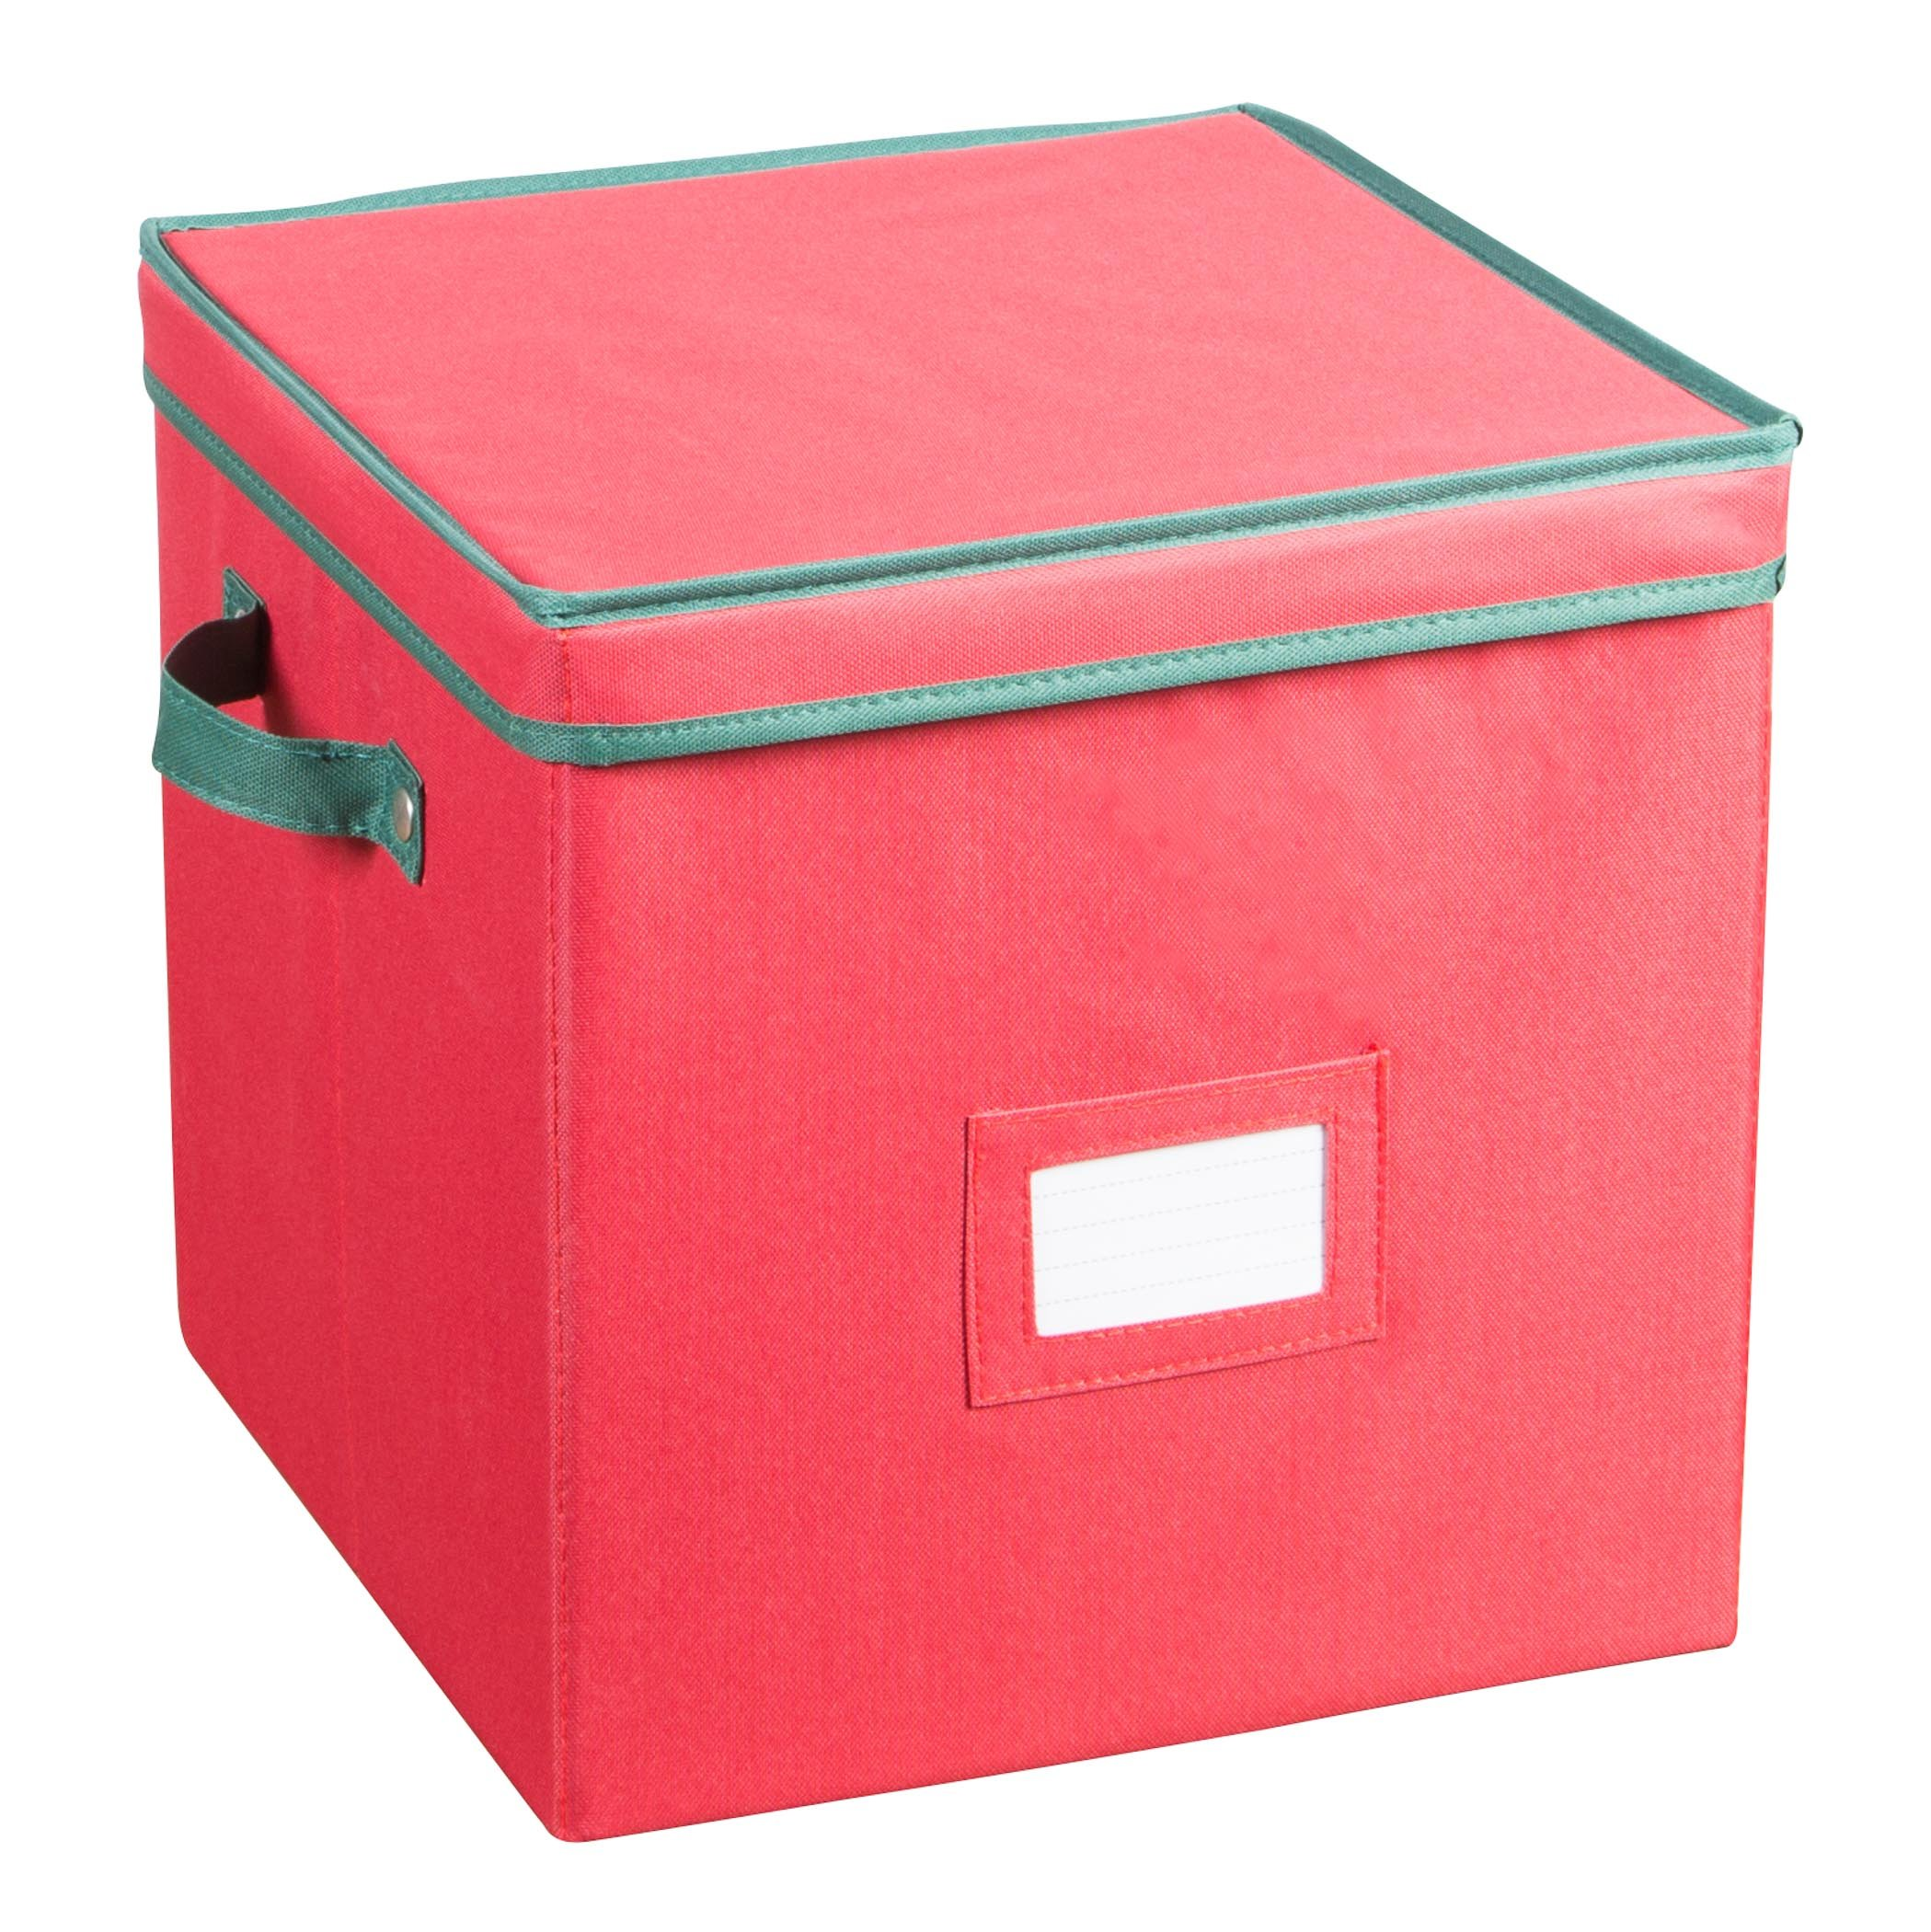 Holiday Ornaments Storage Cube with 64 Individual Compartments - Made with Non-Woven Polypropylene Fabric - Removable Top and Convenient Handle.